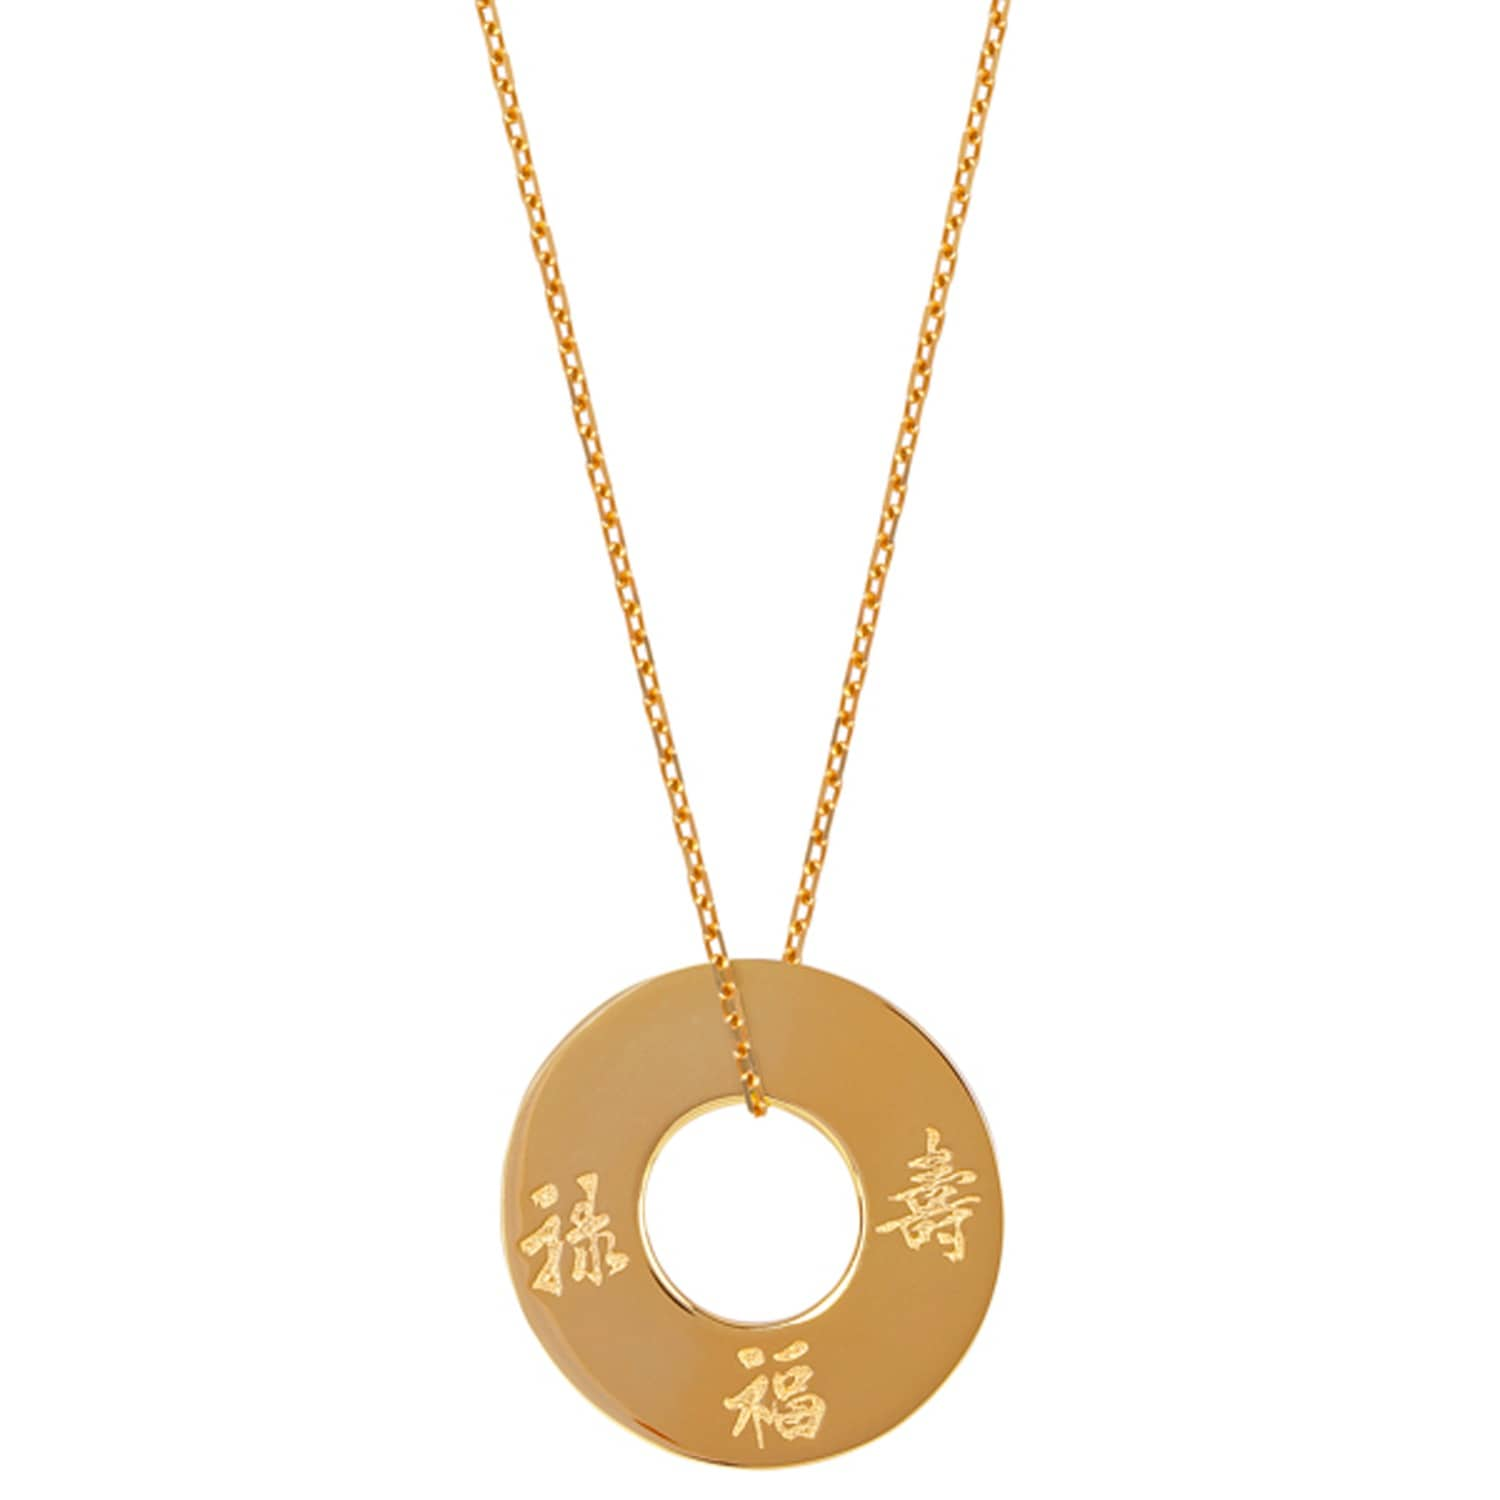 Three Lucky Stars Gold Plated Pendant Necklace image 7b100c3a809